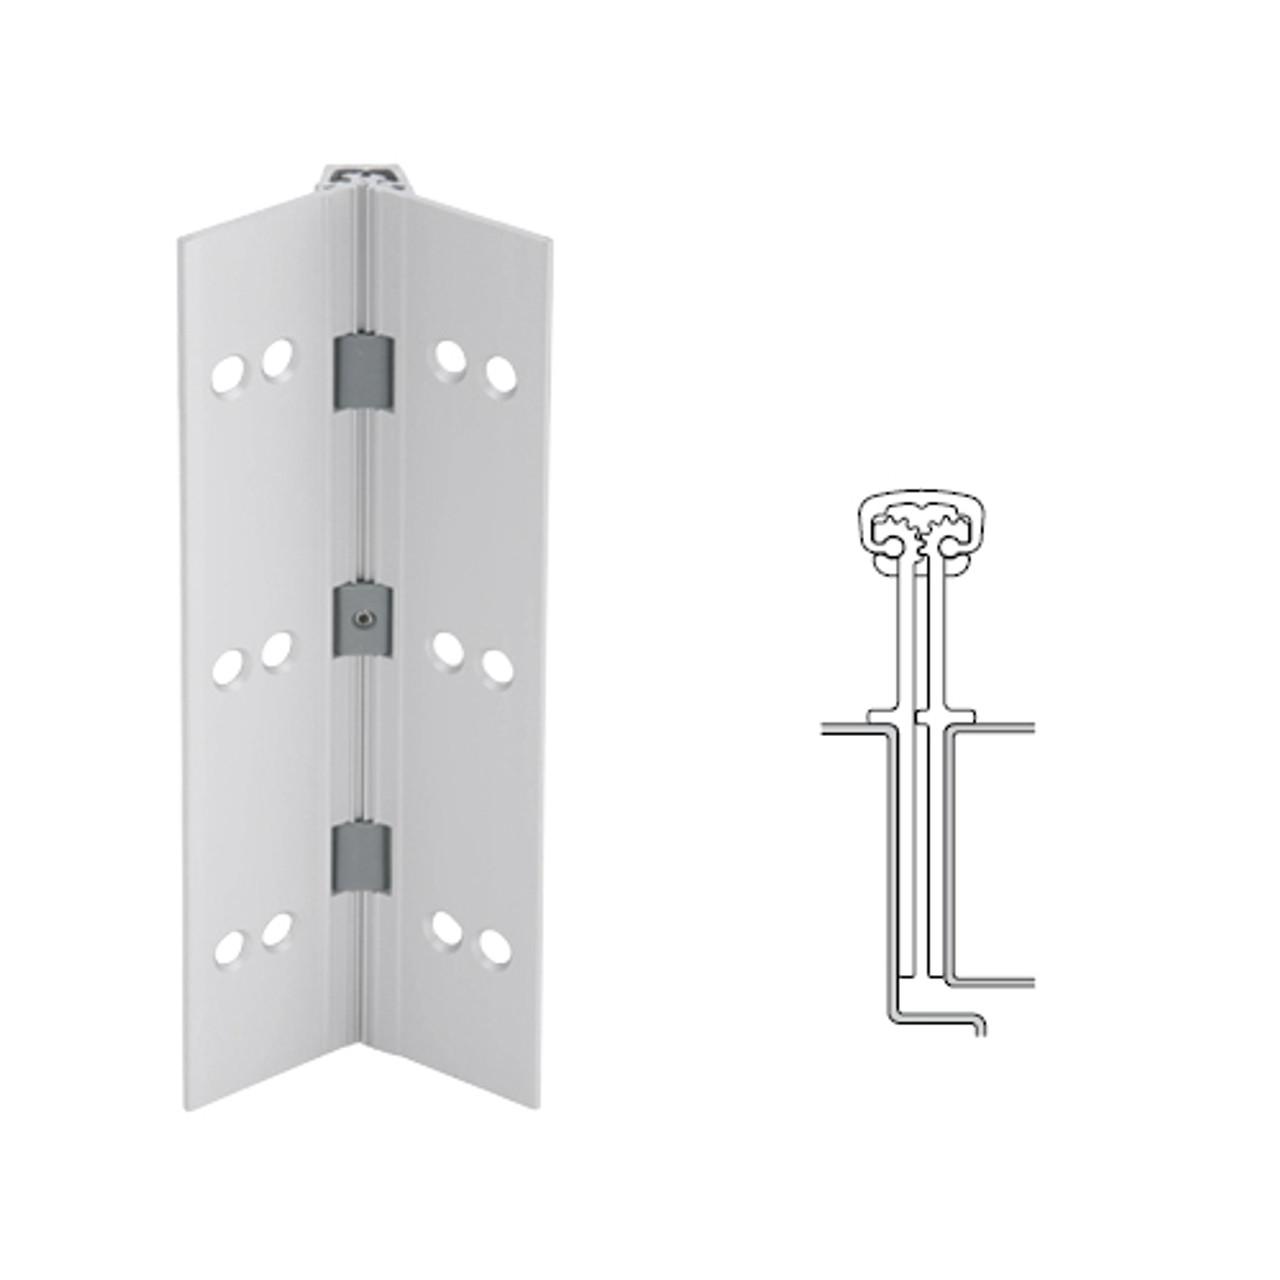 040XY-US28-95-SECHM IVES Full Mortise Continuous Geared Hinges with Security Screws - Hex Pin Drive in Satin Aluminum